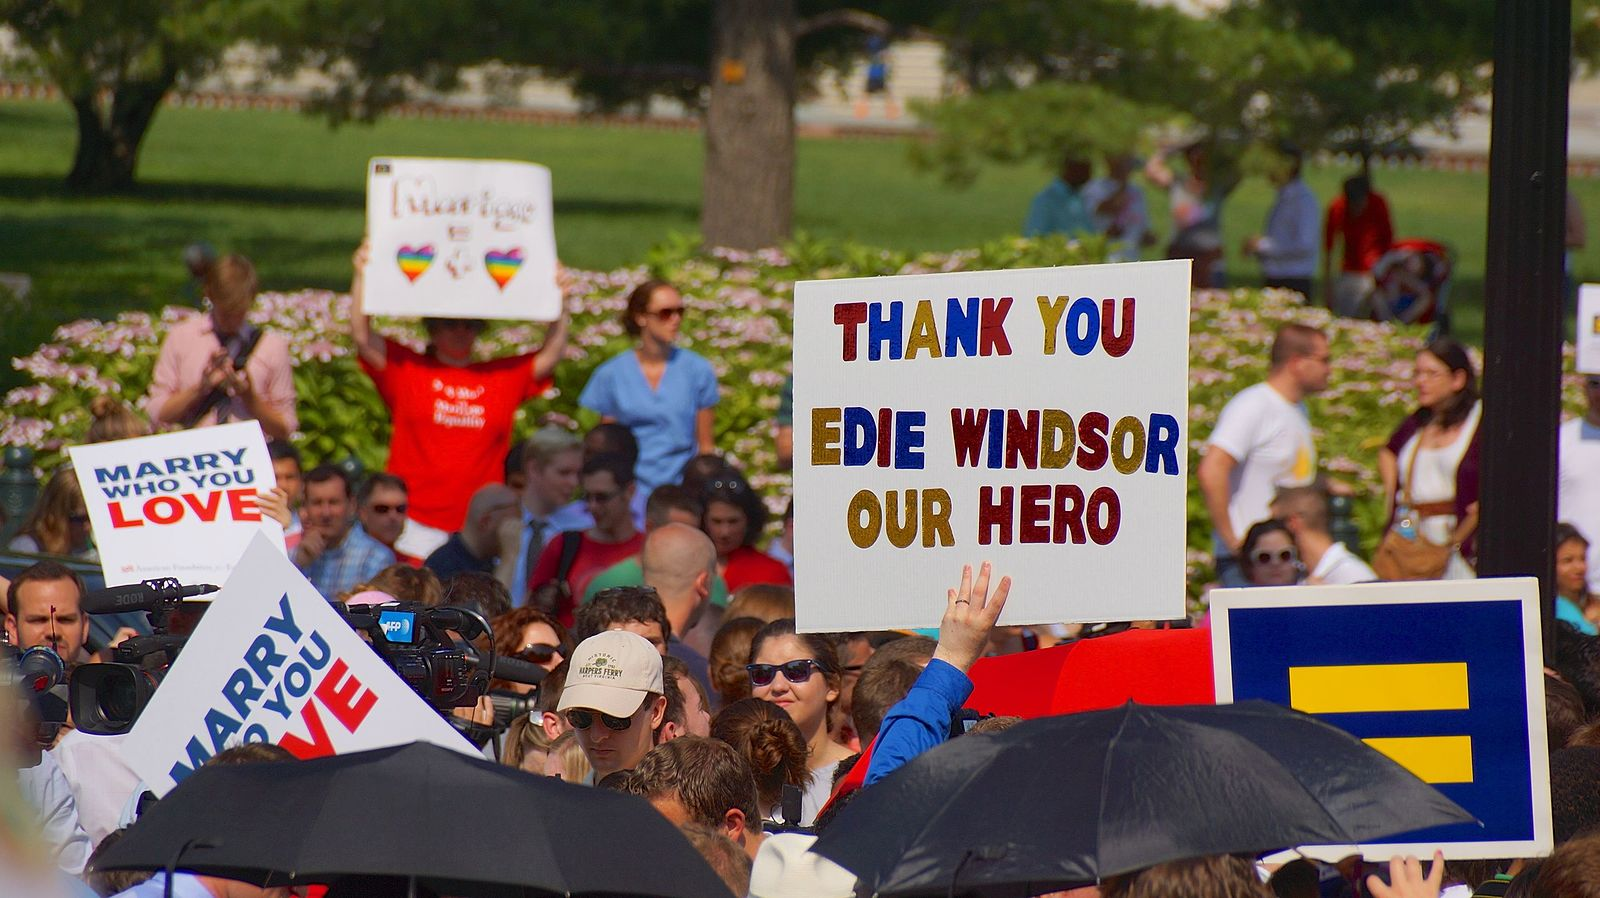 A participant during a Pride march holding a sign thanking Edith Windsor, a hero